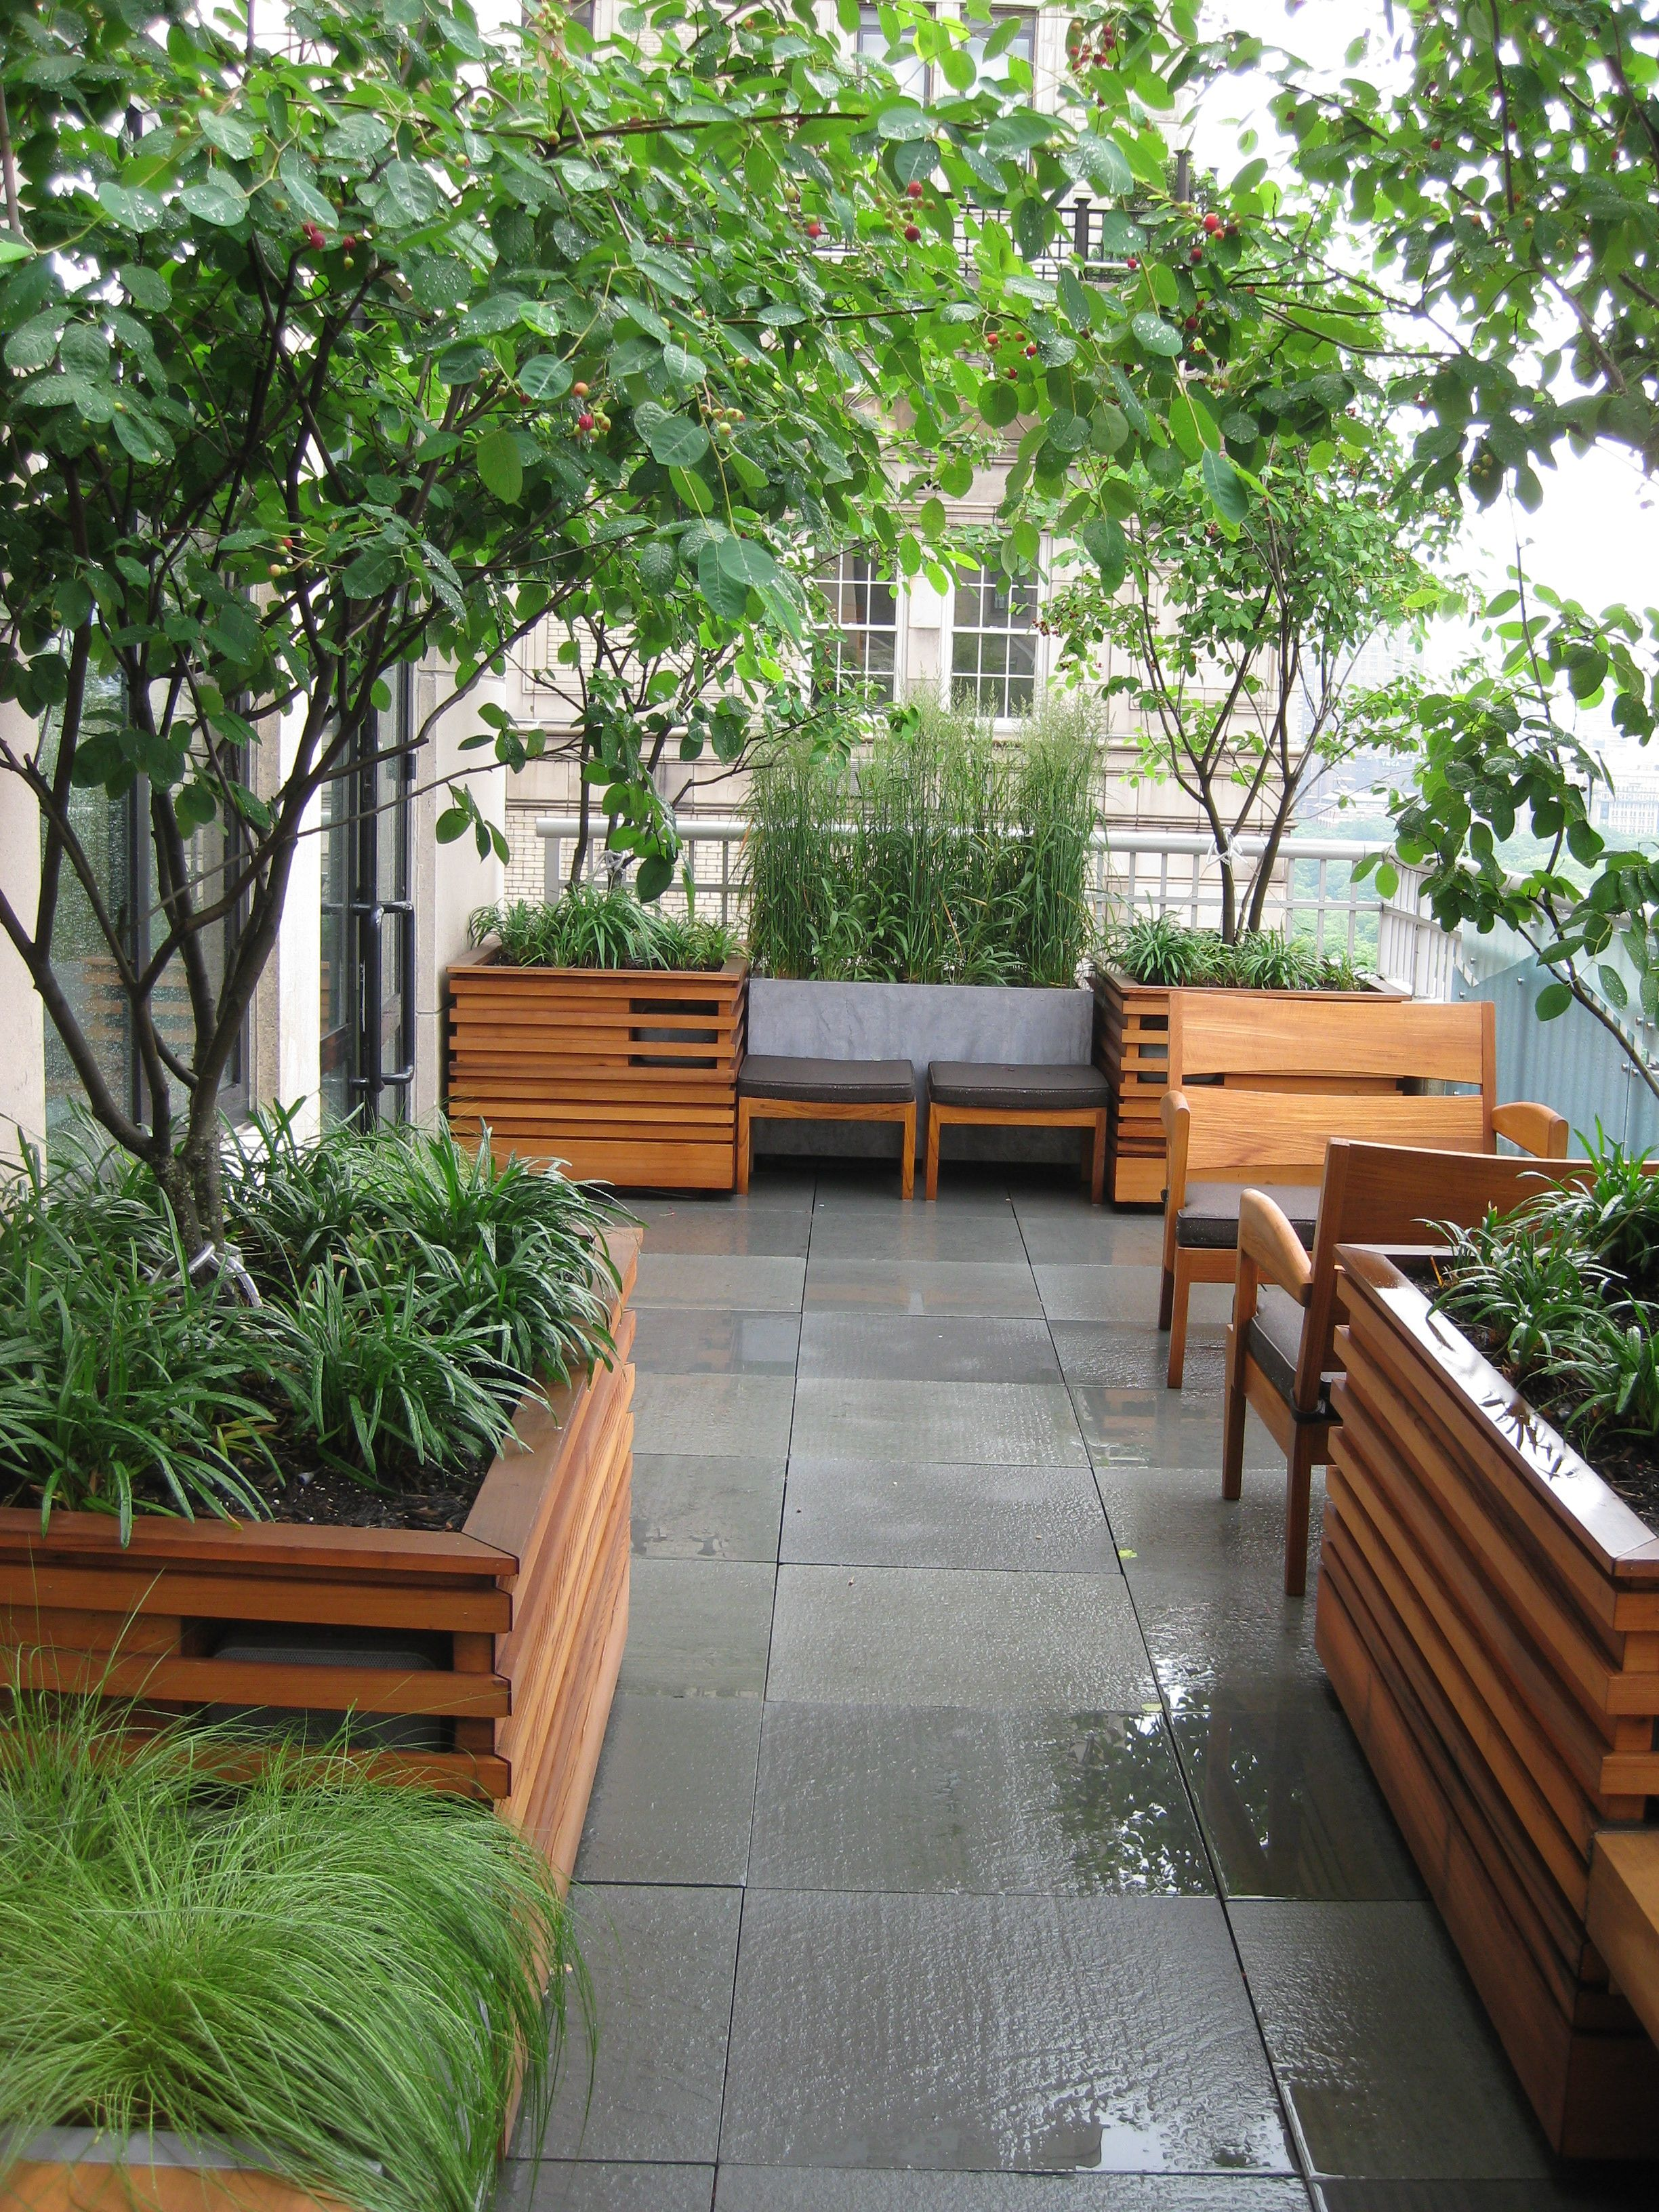 Rooftop Garden Manhattan Designed Installed Maintained By Plant Specialists Www Plantspecialists Com Rooftop Garden Garden Design Cool Plants